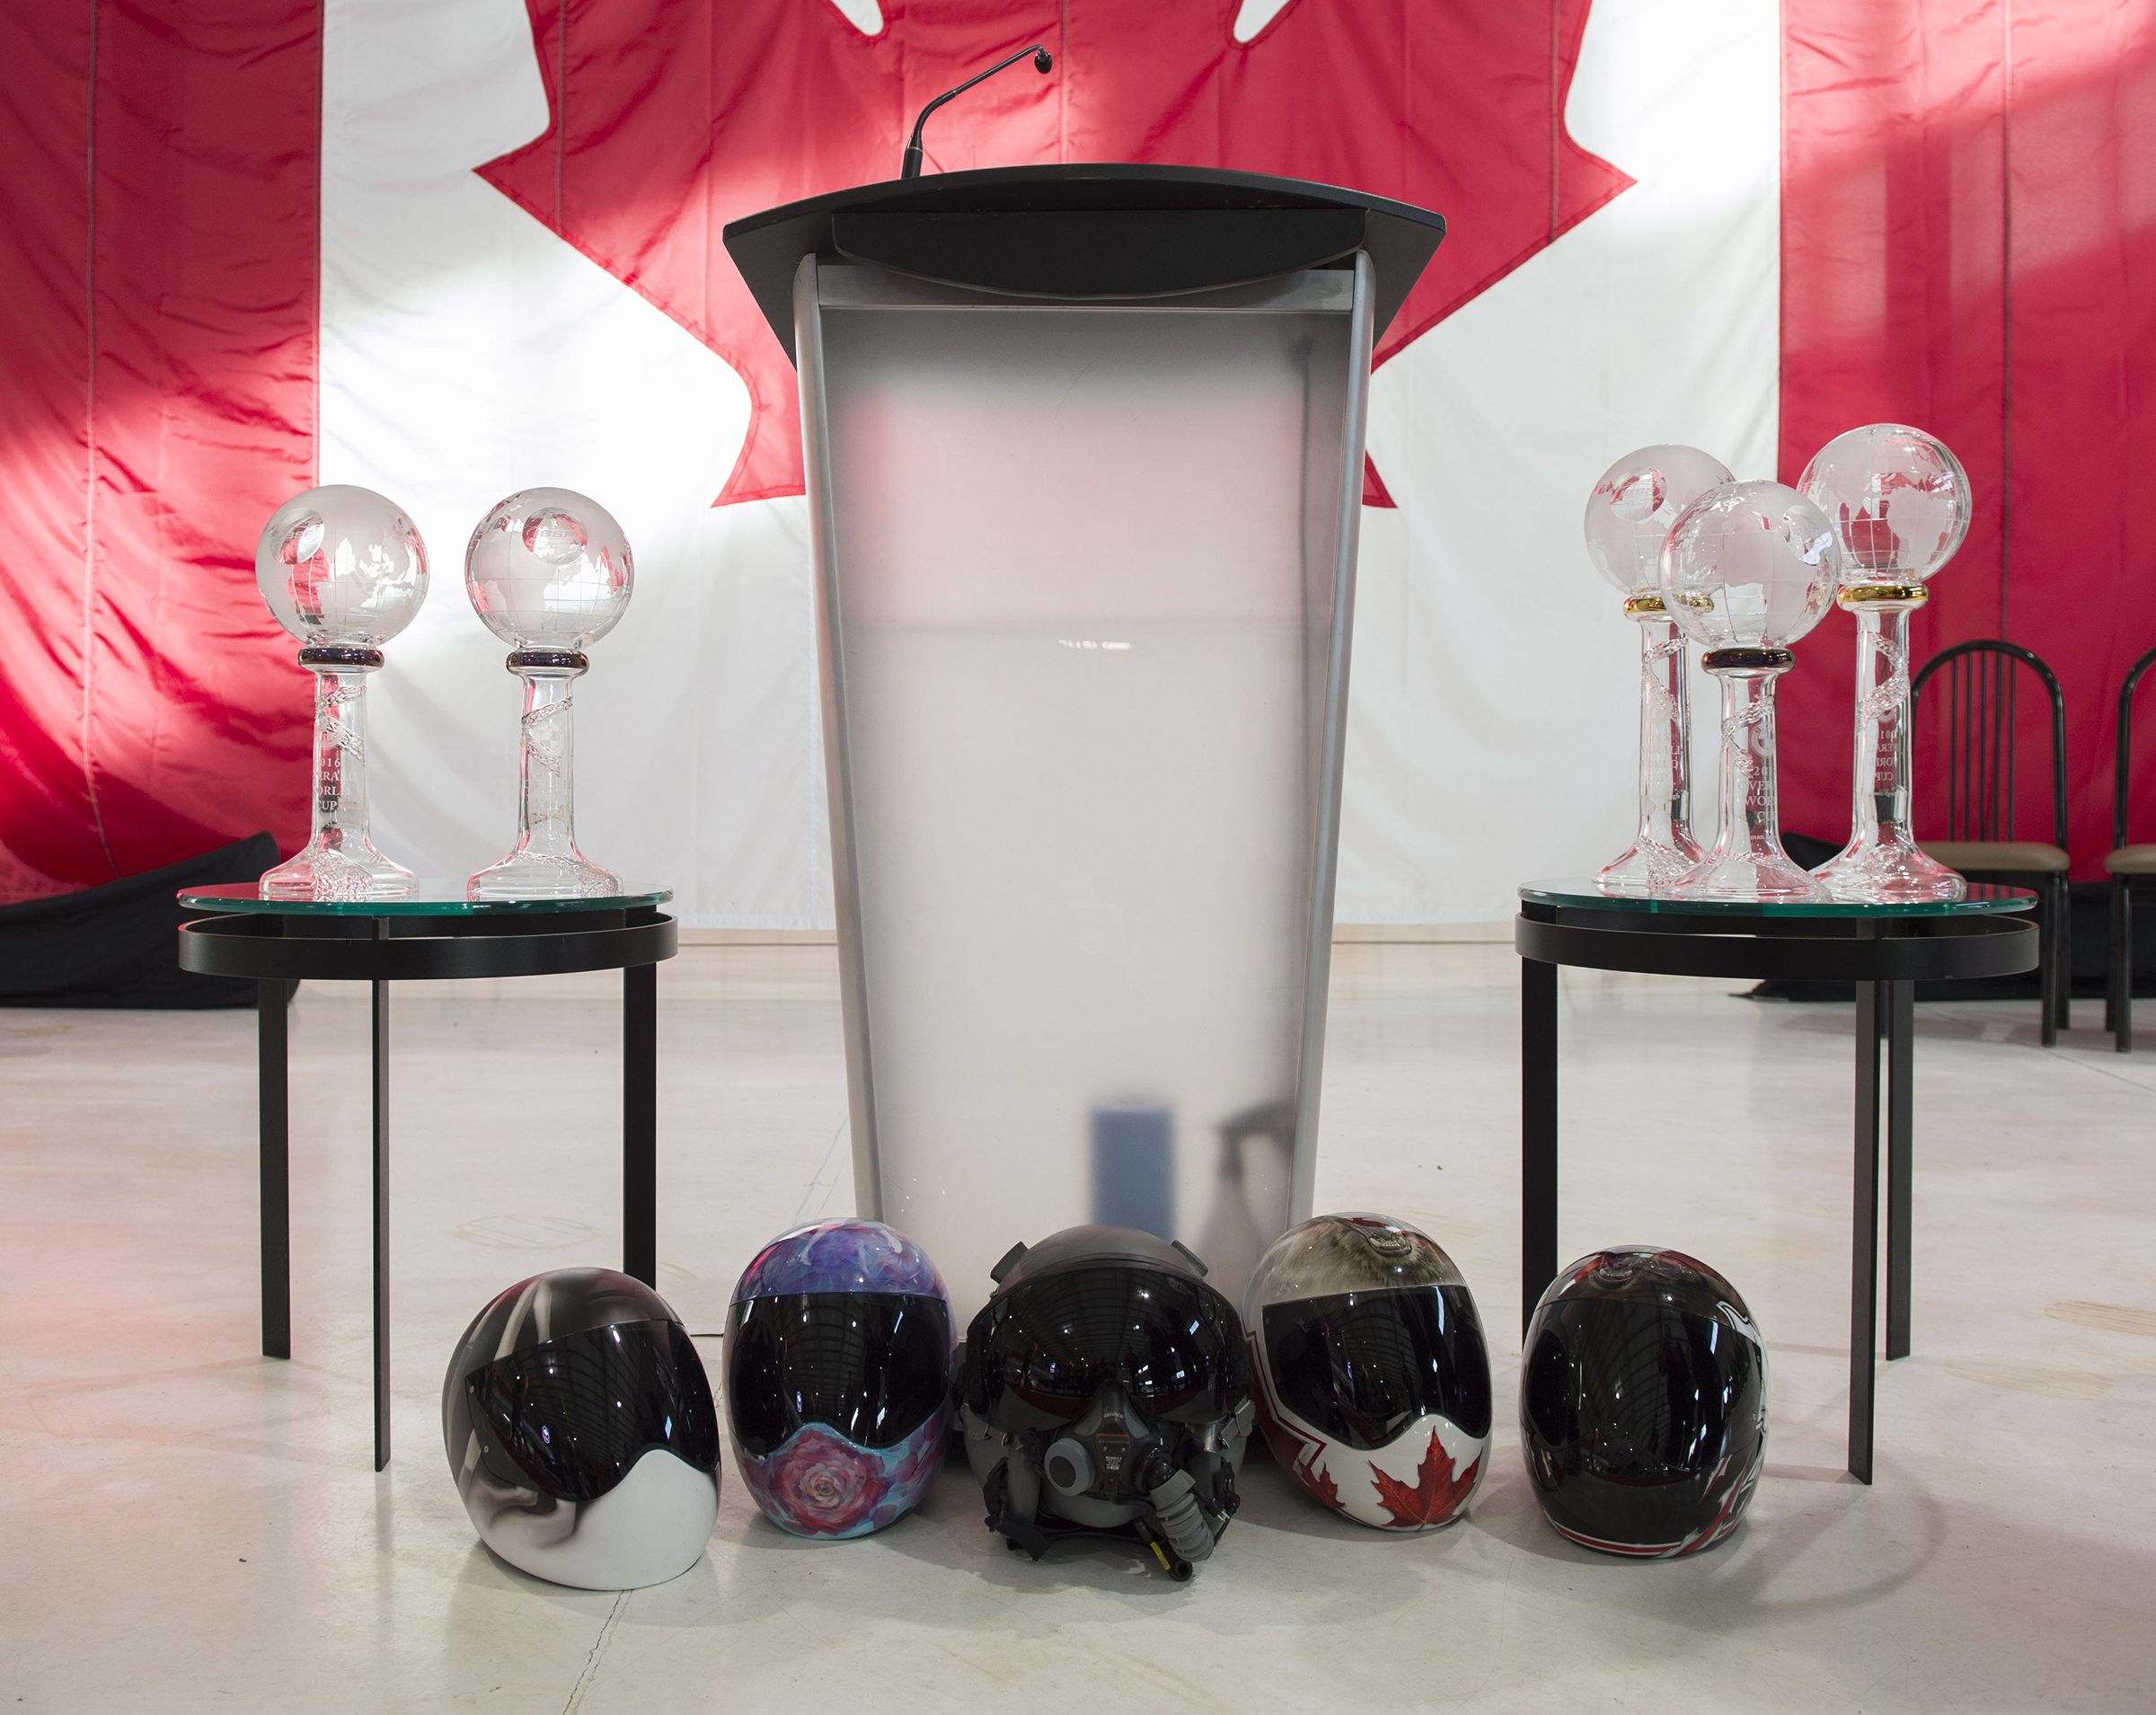 An RCAF CF-18 pilot's helmet rests among the athlete's helmets in front of the speaker's podium during the Bobsleigh Canada Skeleton nominated athletes ceremony at Signature Flight Support, Calgary, Alberta, on January 24, 2018. PHOTO: Ordinary Seaman Justin Spinello, CK03-2018-0012-003